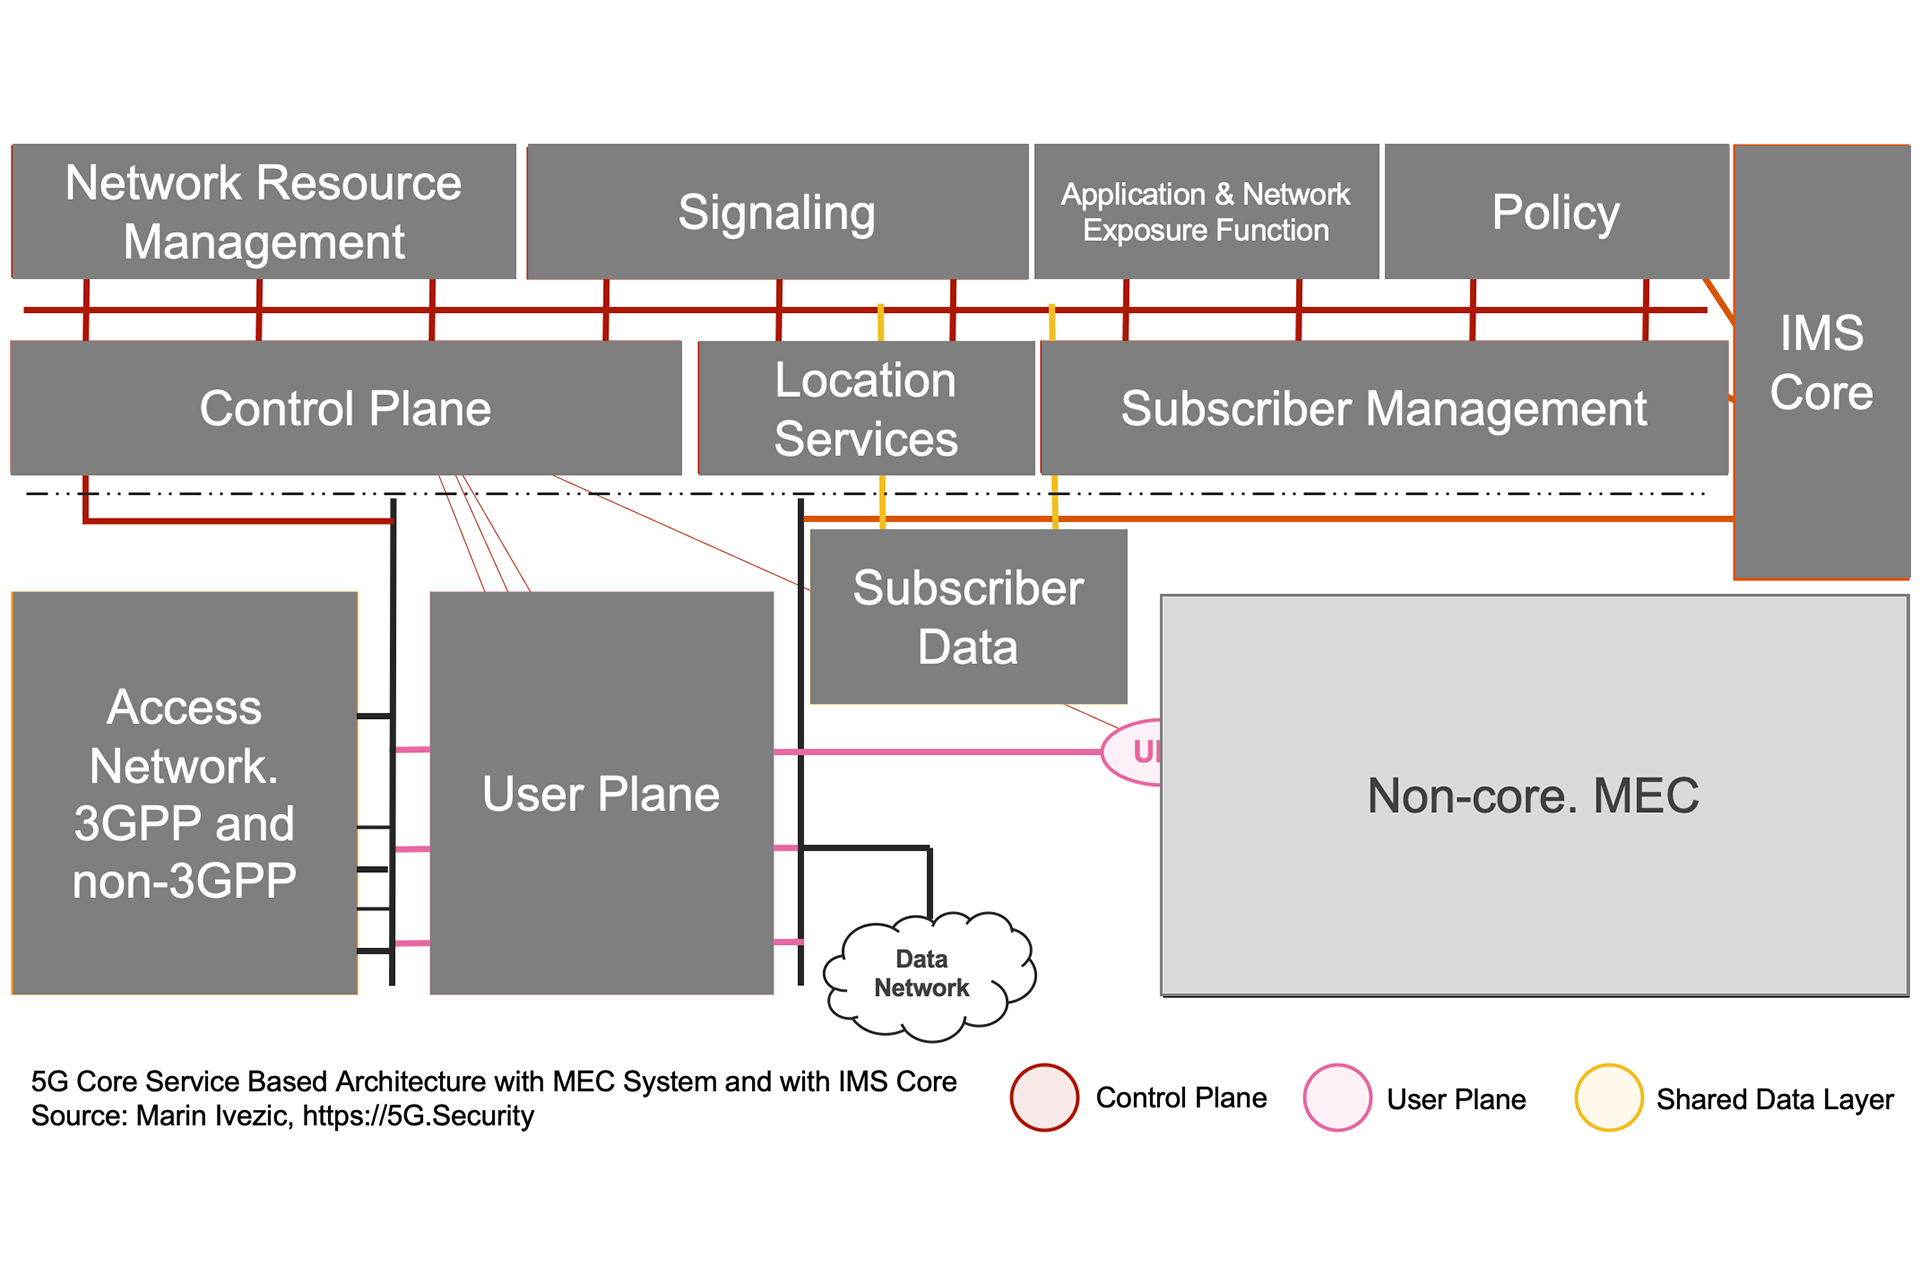 5G SBA IMS MEC Architecture Simplified